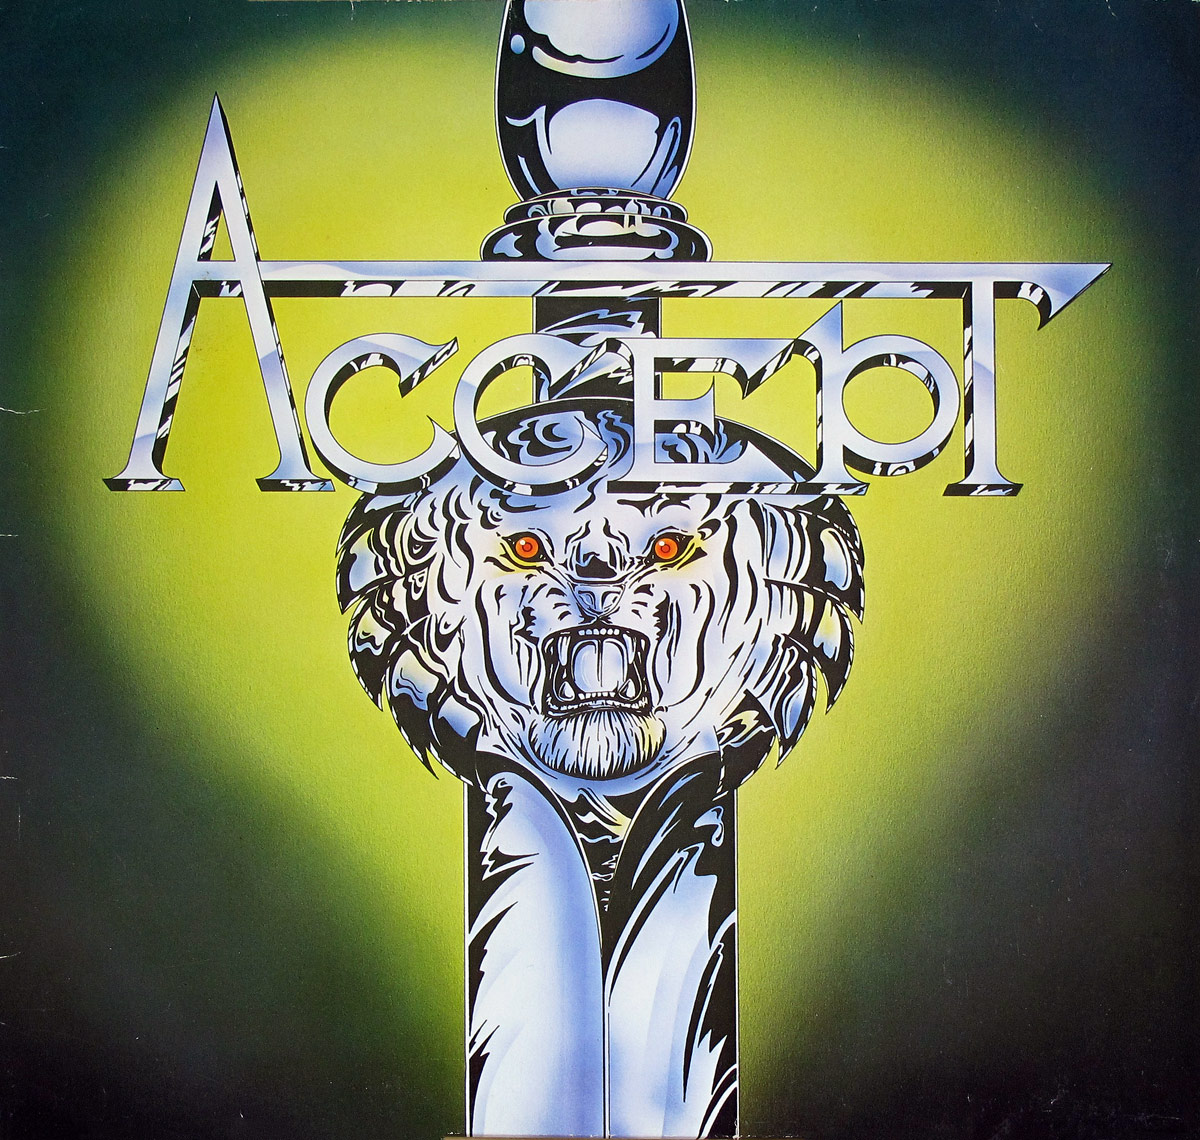 Album Front Cover Photo of ACCEPT - I'm A Rebel ( title-less )